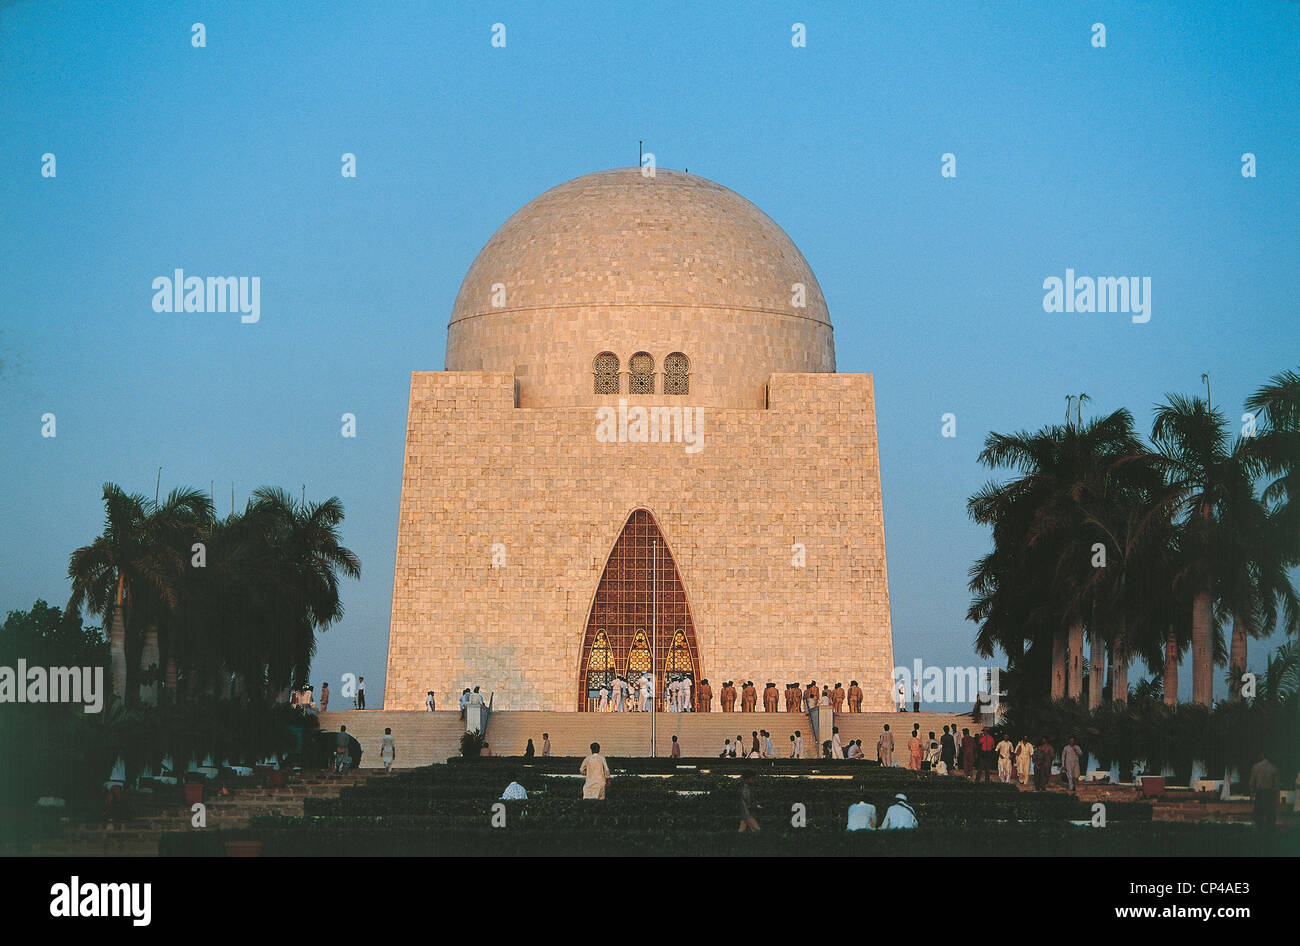 mazar-e-quaid dating point